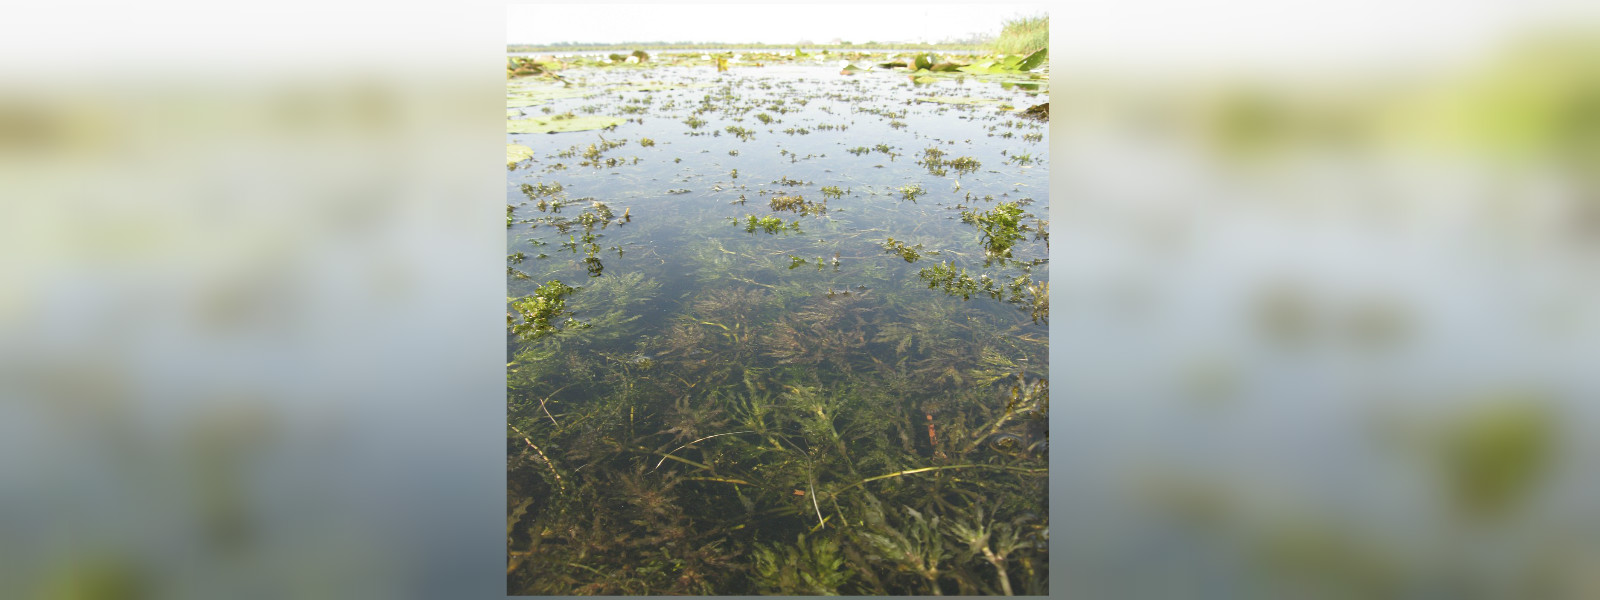 Invasive moss spreads in wewas of North Central Province